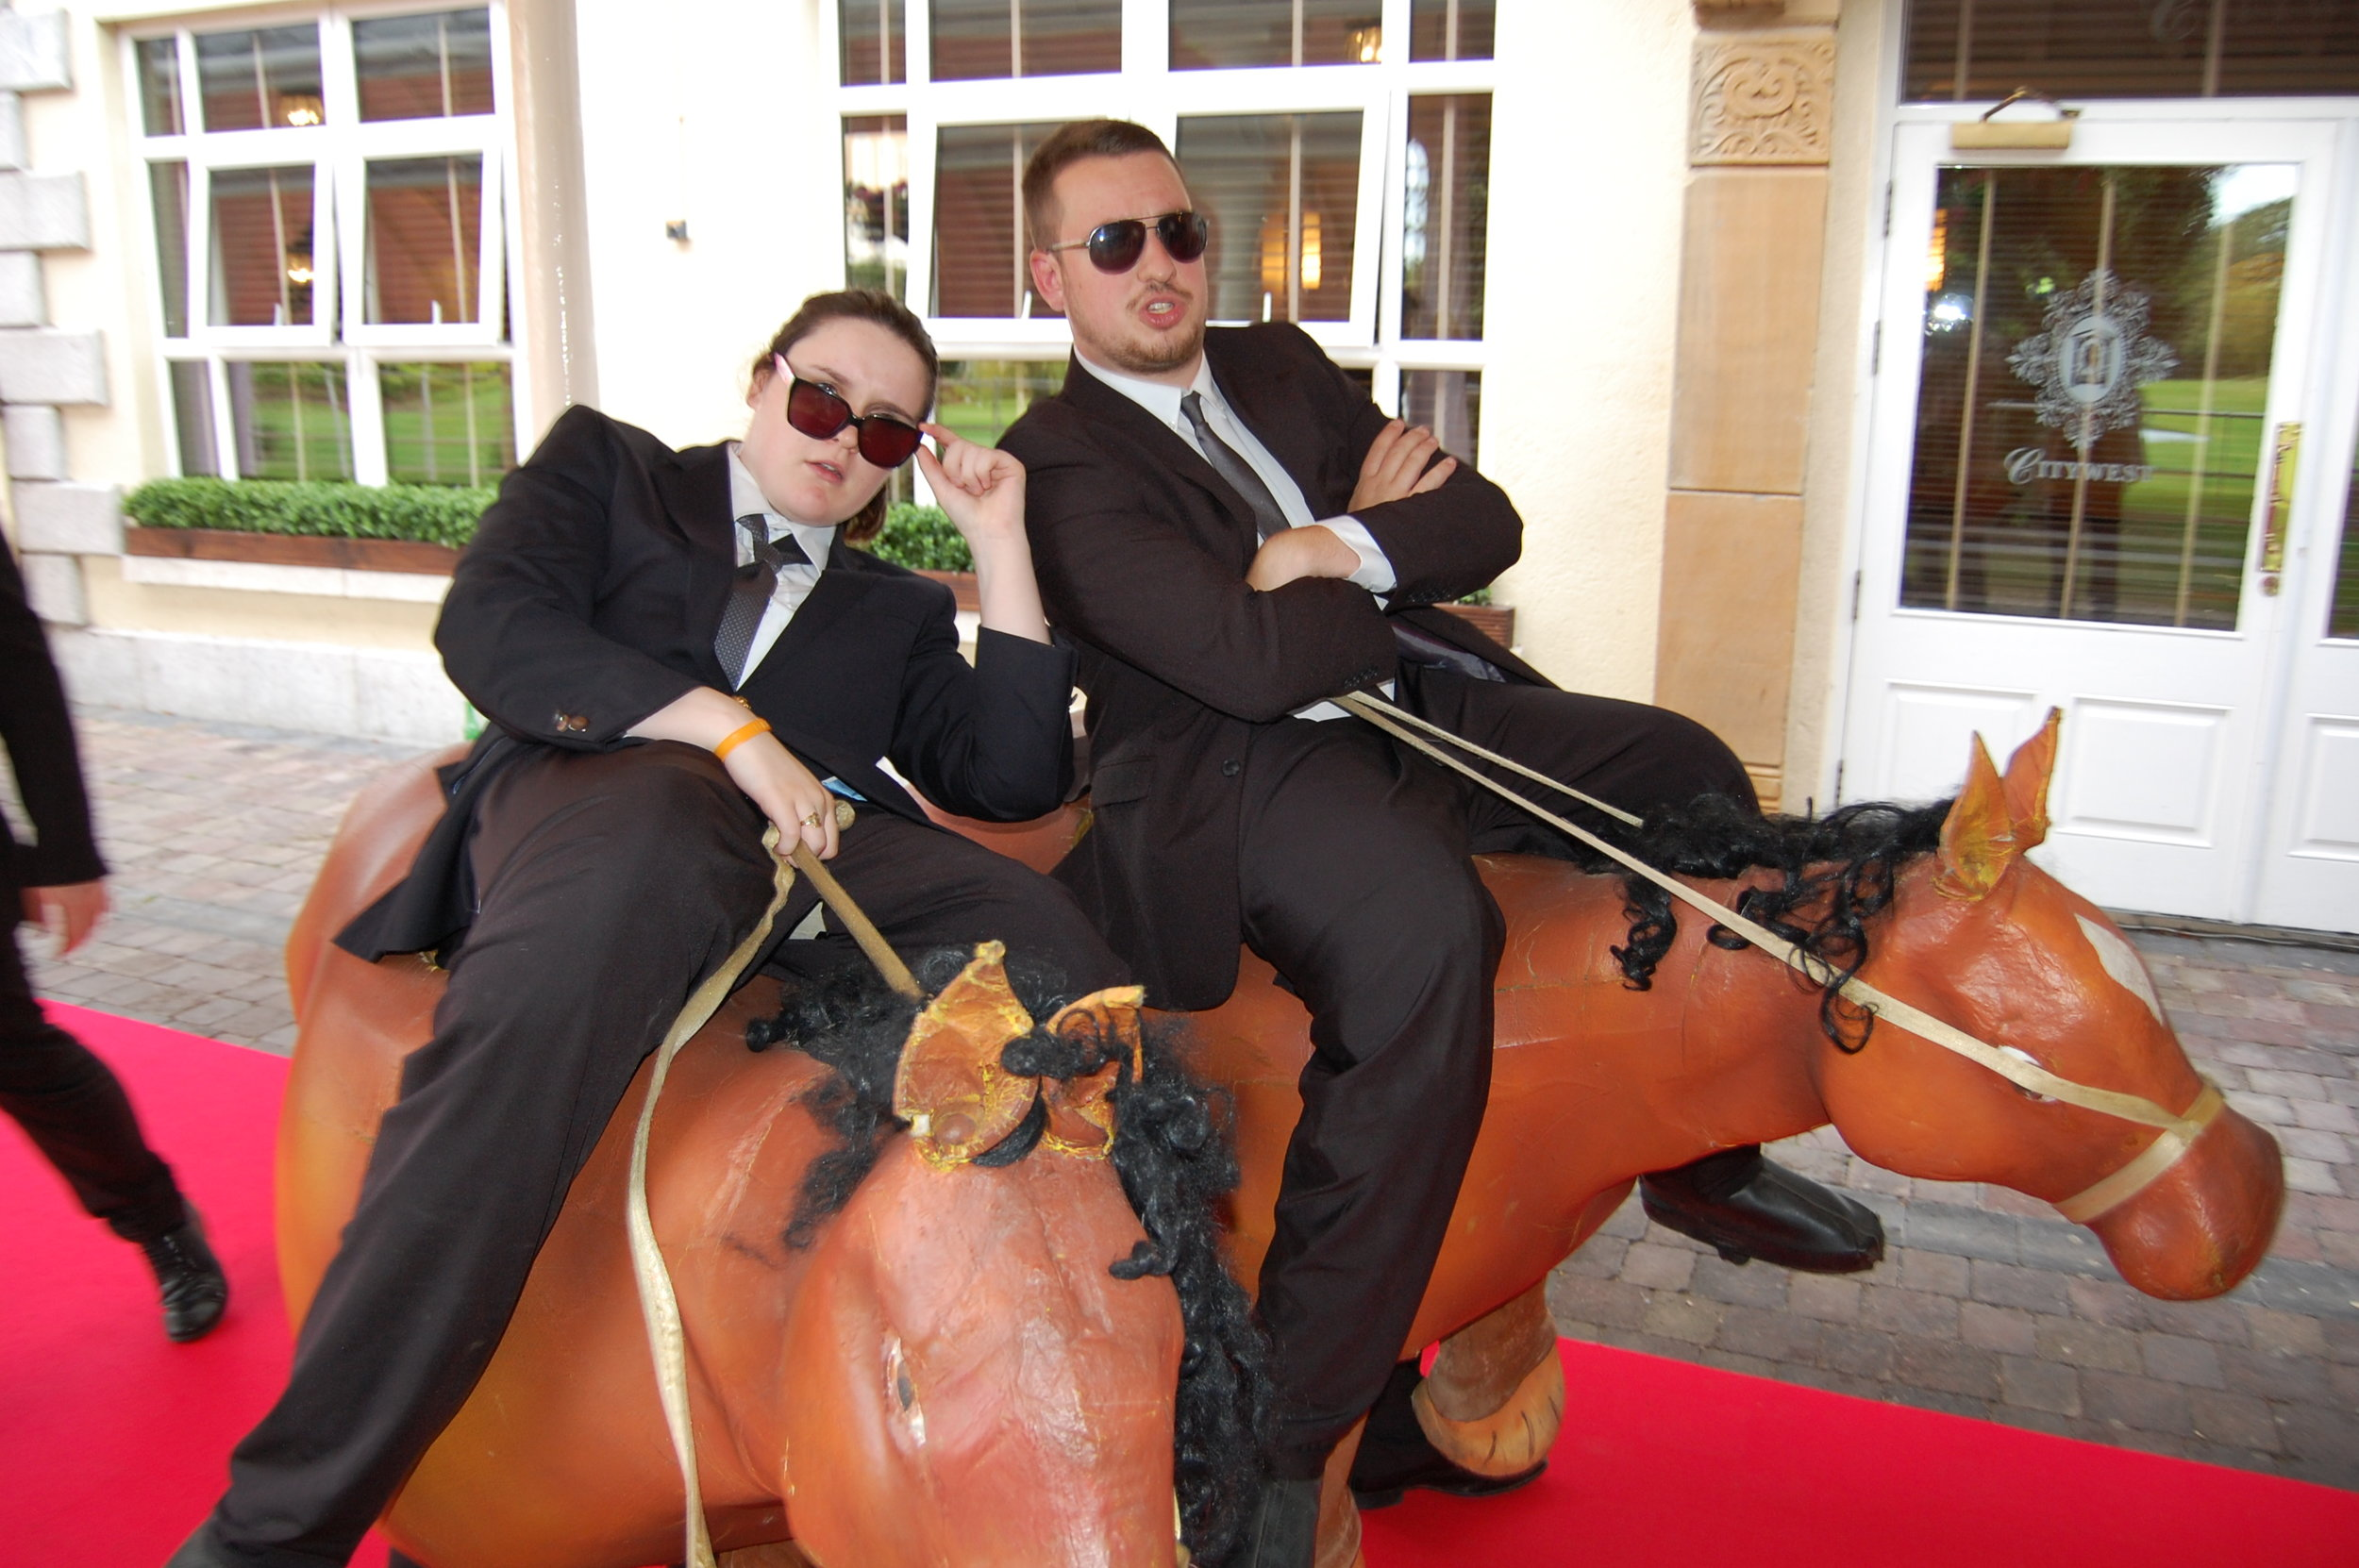 BOUNCERS ON HORSEBACK